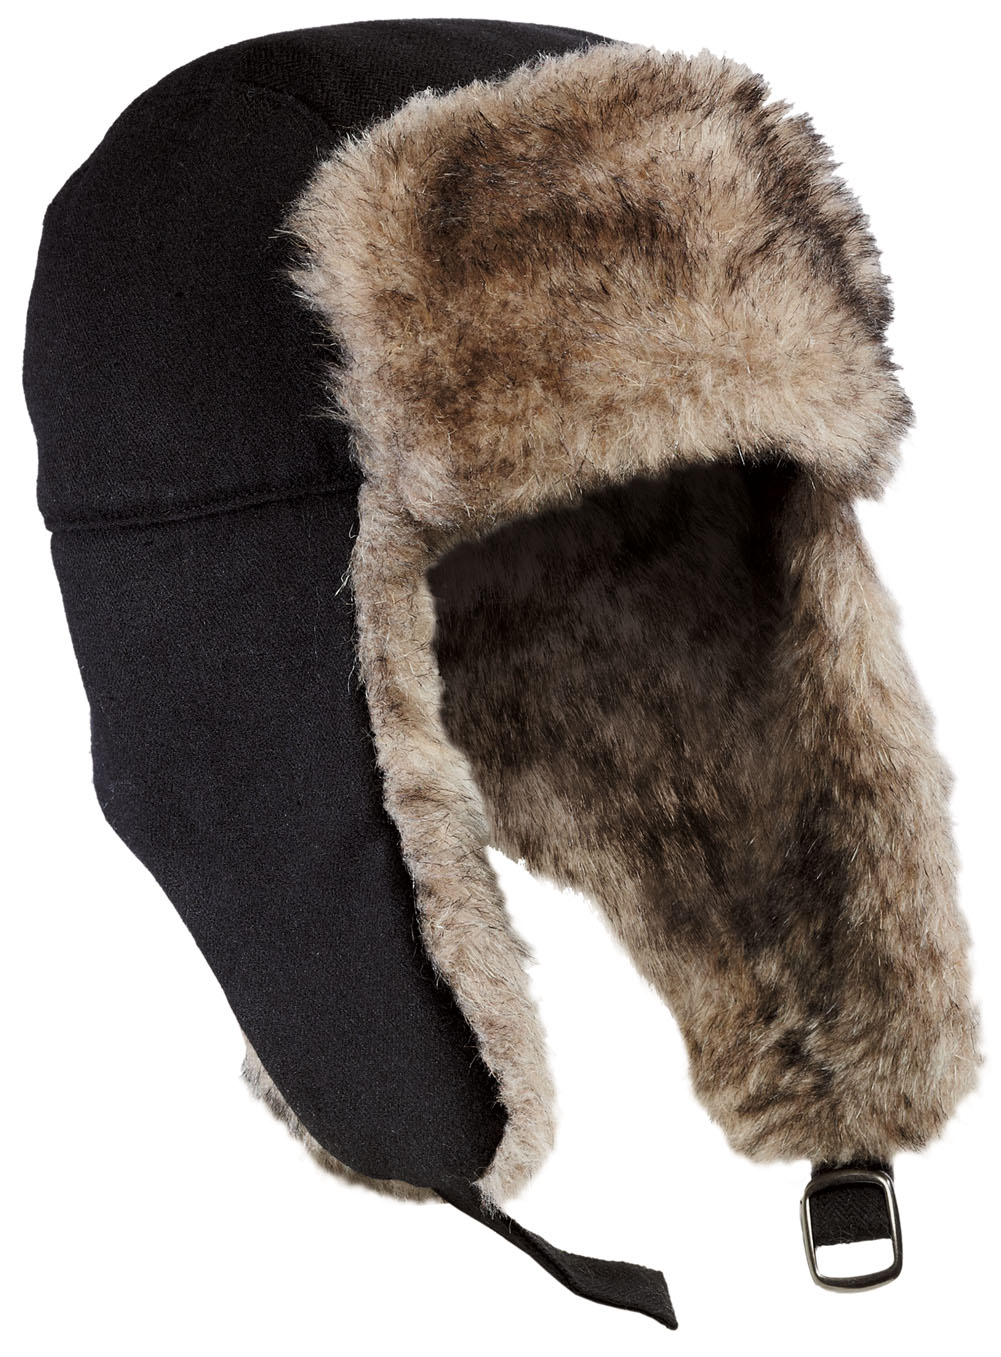 Ford Sweatshirts Faux Fur Winter Hat with Flaps - Hats